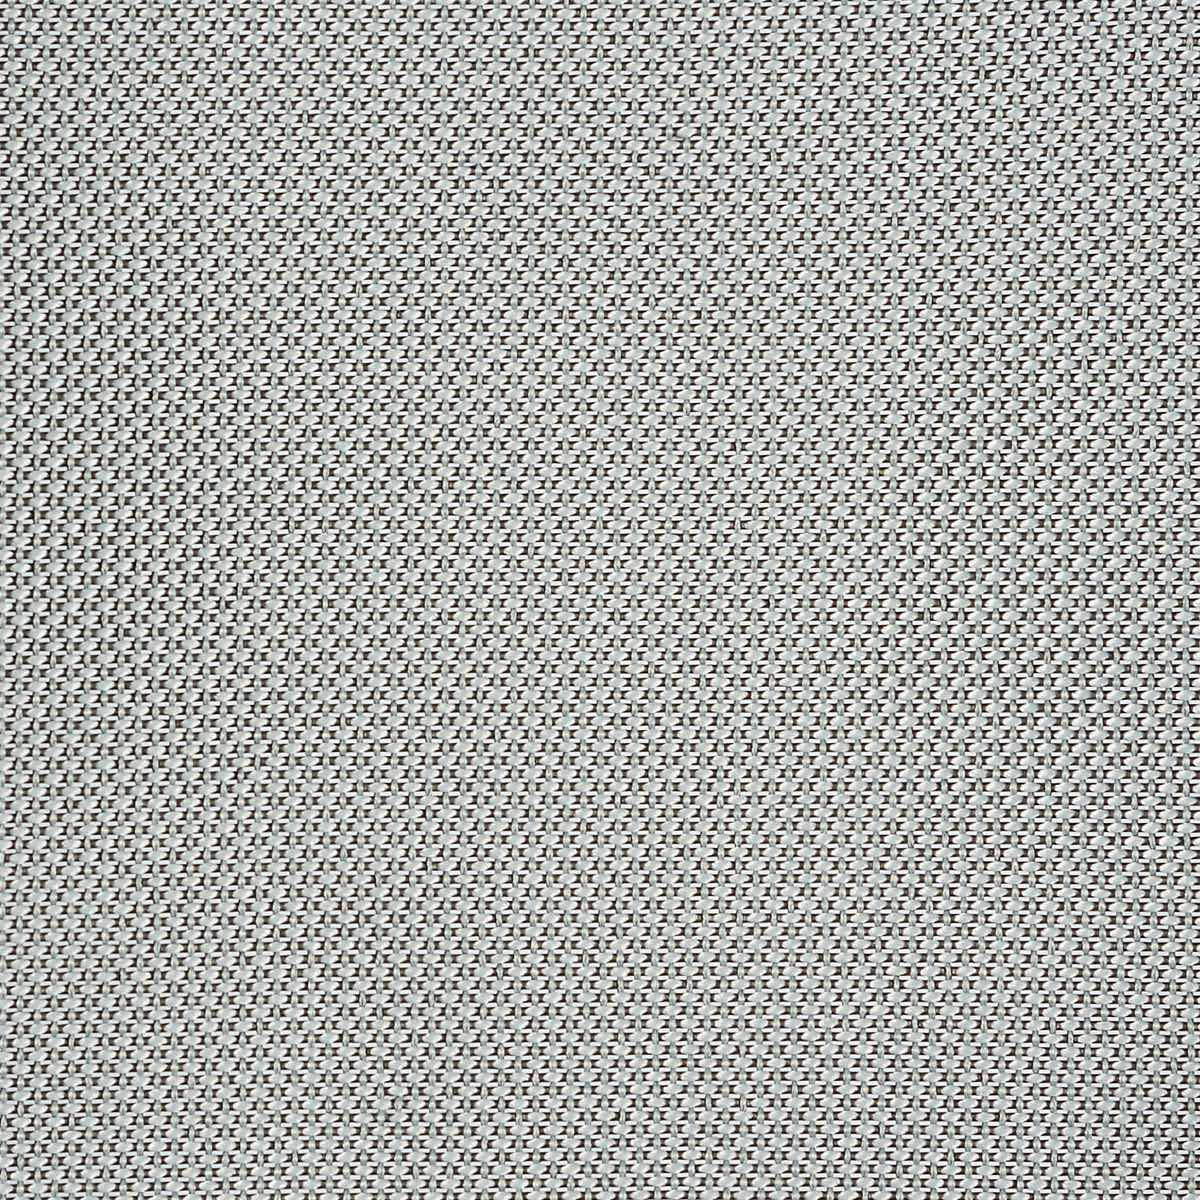 A Mineral light gray suspension swatch.